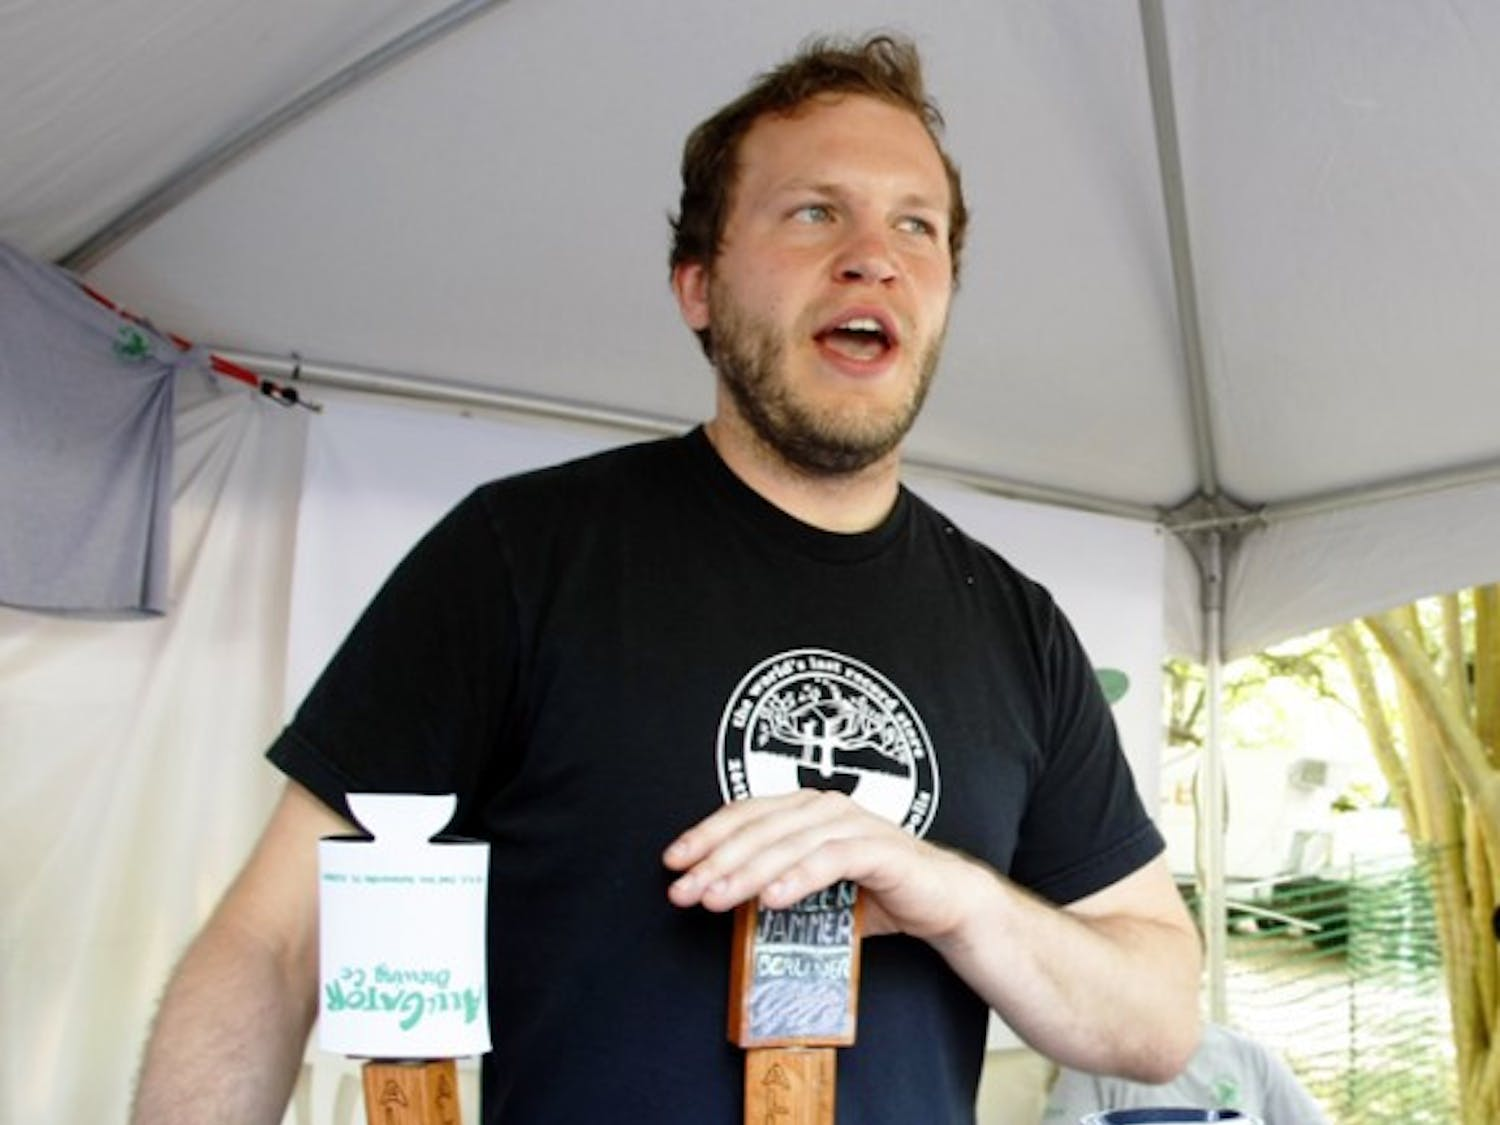 Neal Mackowiak, brewer at Alligator Brewing Co., serves samples at the Hogtown Craft Beer Festival on Saturday.